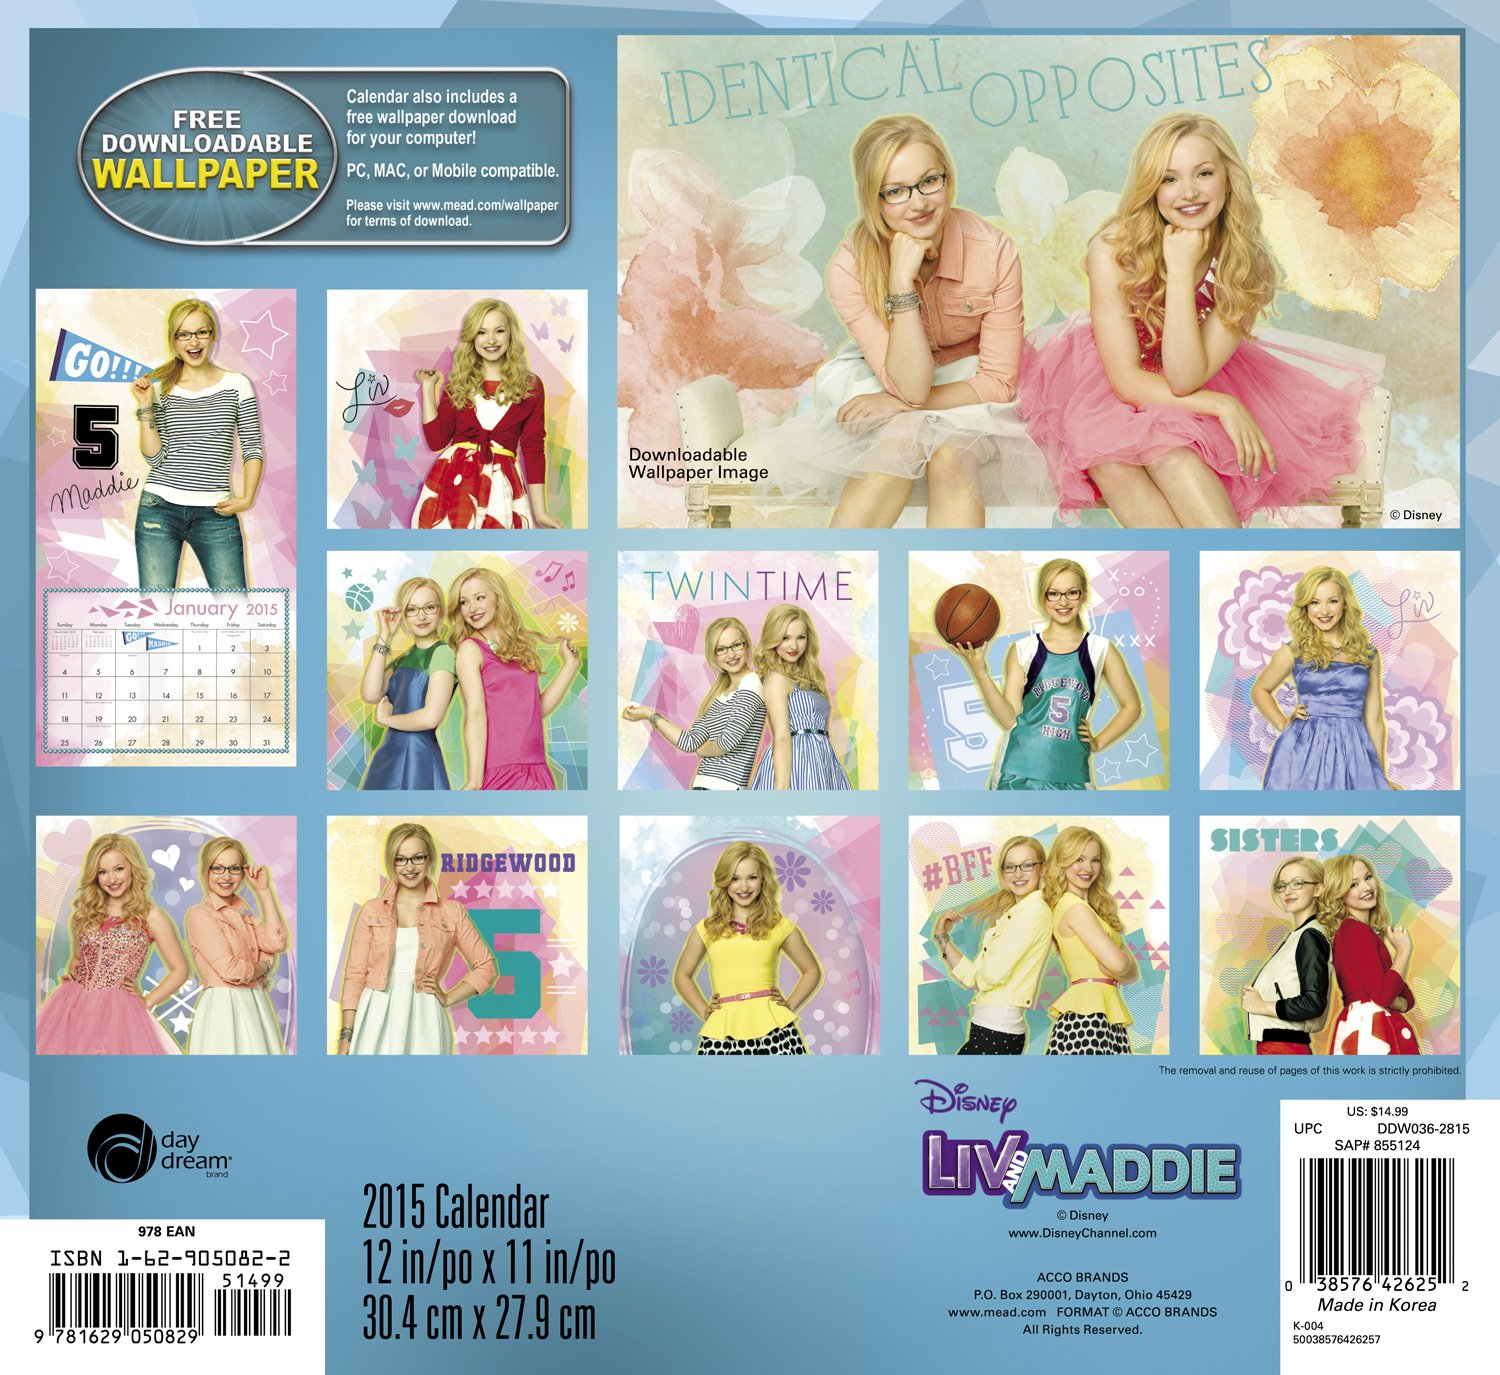 Printable coloring pages liv and maddie - Disney Liv And Maddie Wall Calendar 2015 Day Dream 9781629050829 Amazon Com Books